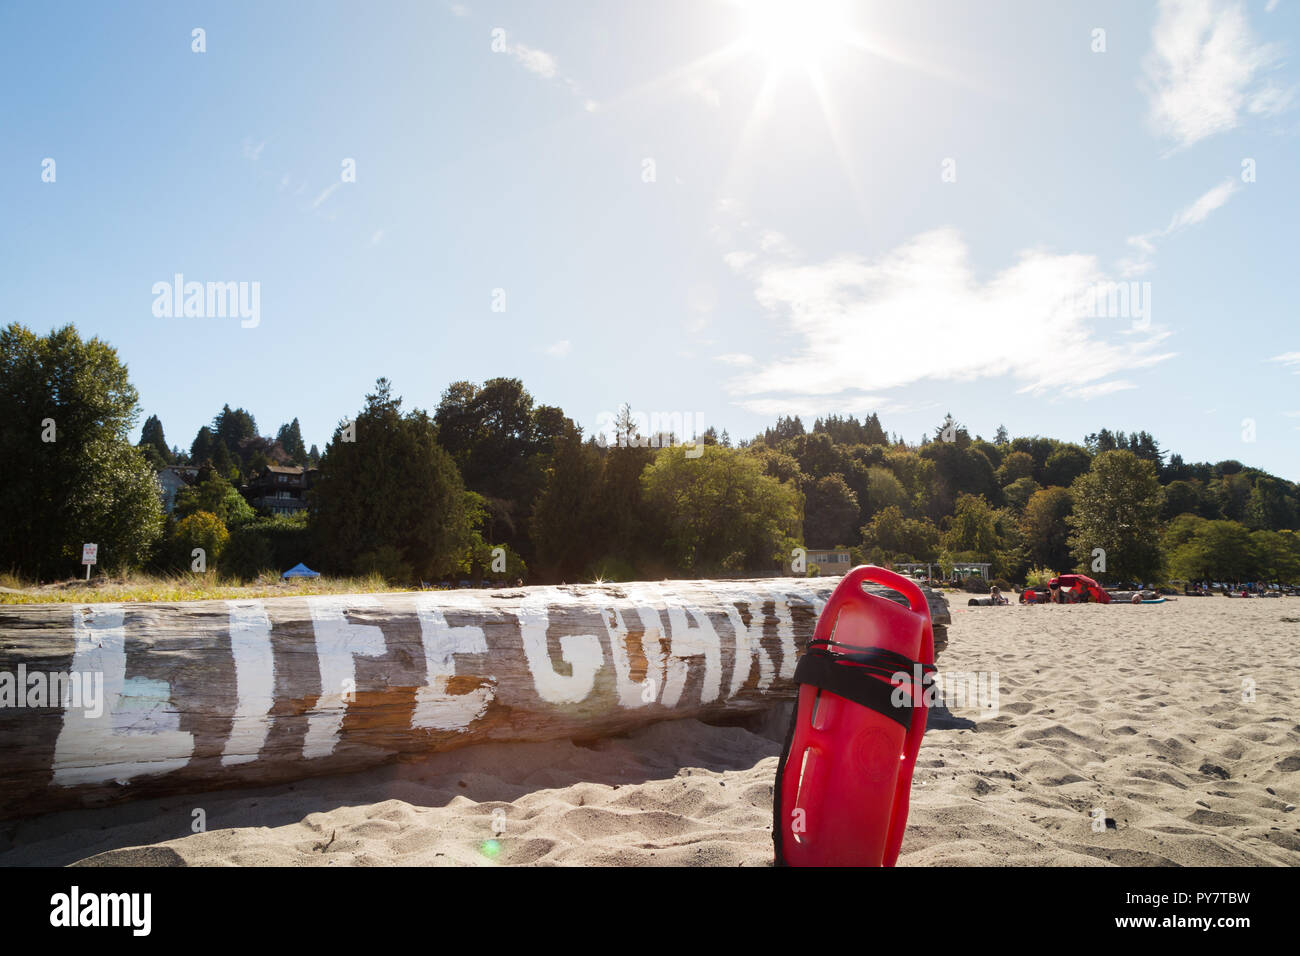 8f66c4b4199 A lifeguard buoy in the sand in front of a log with lifeguard written on it